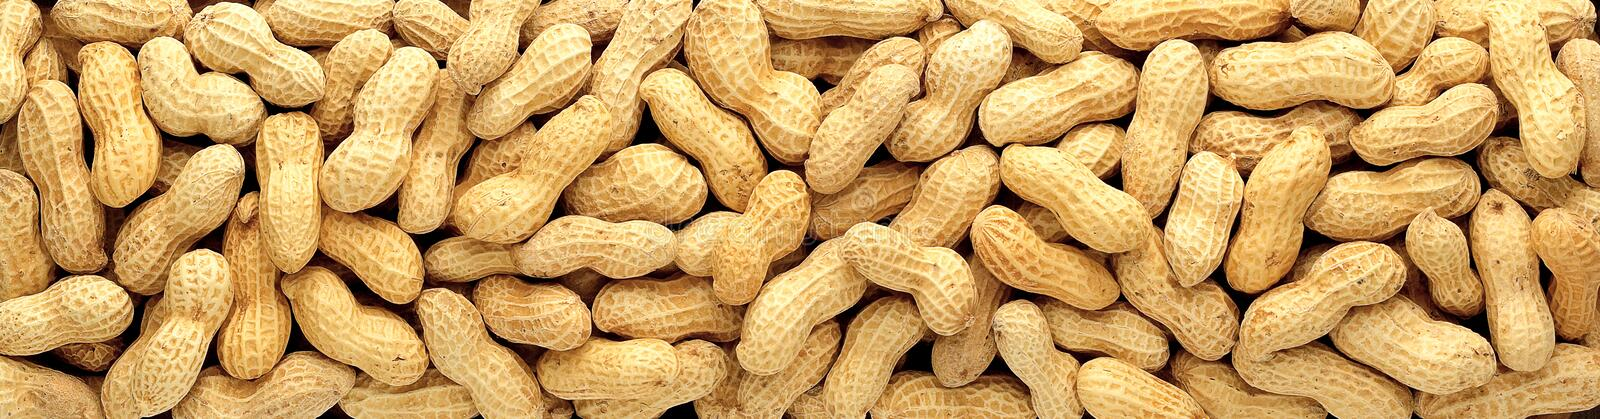 Peanuts. Group of peanuts ready for grab